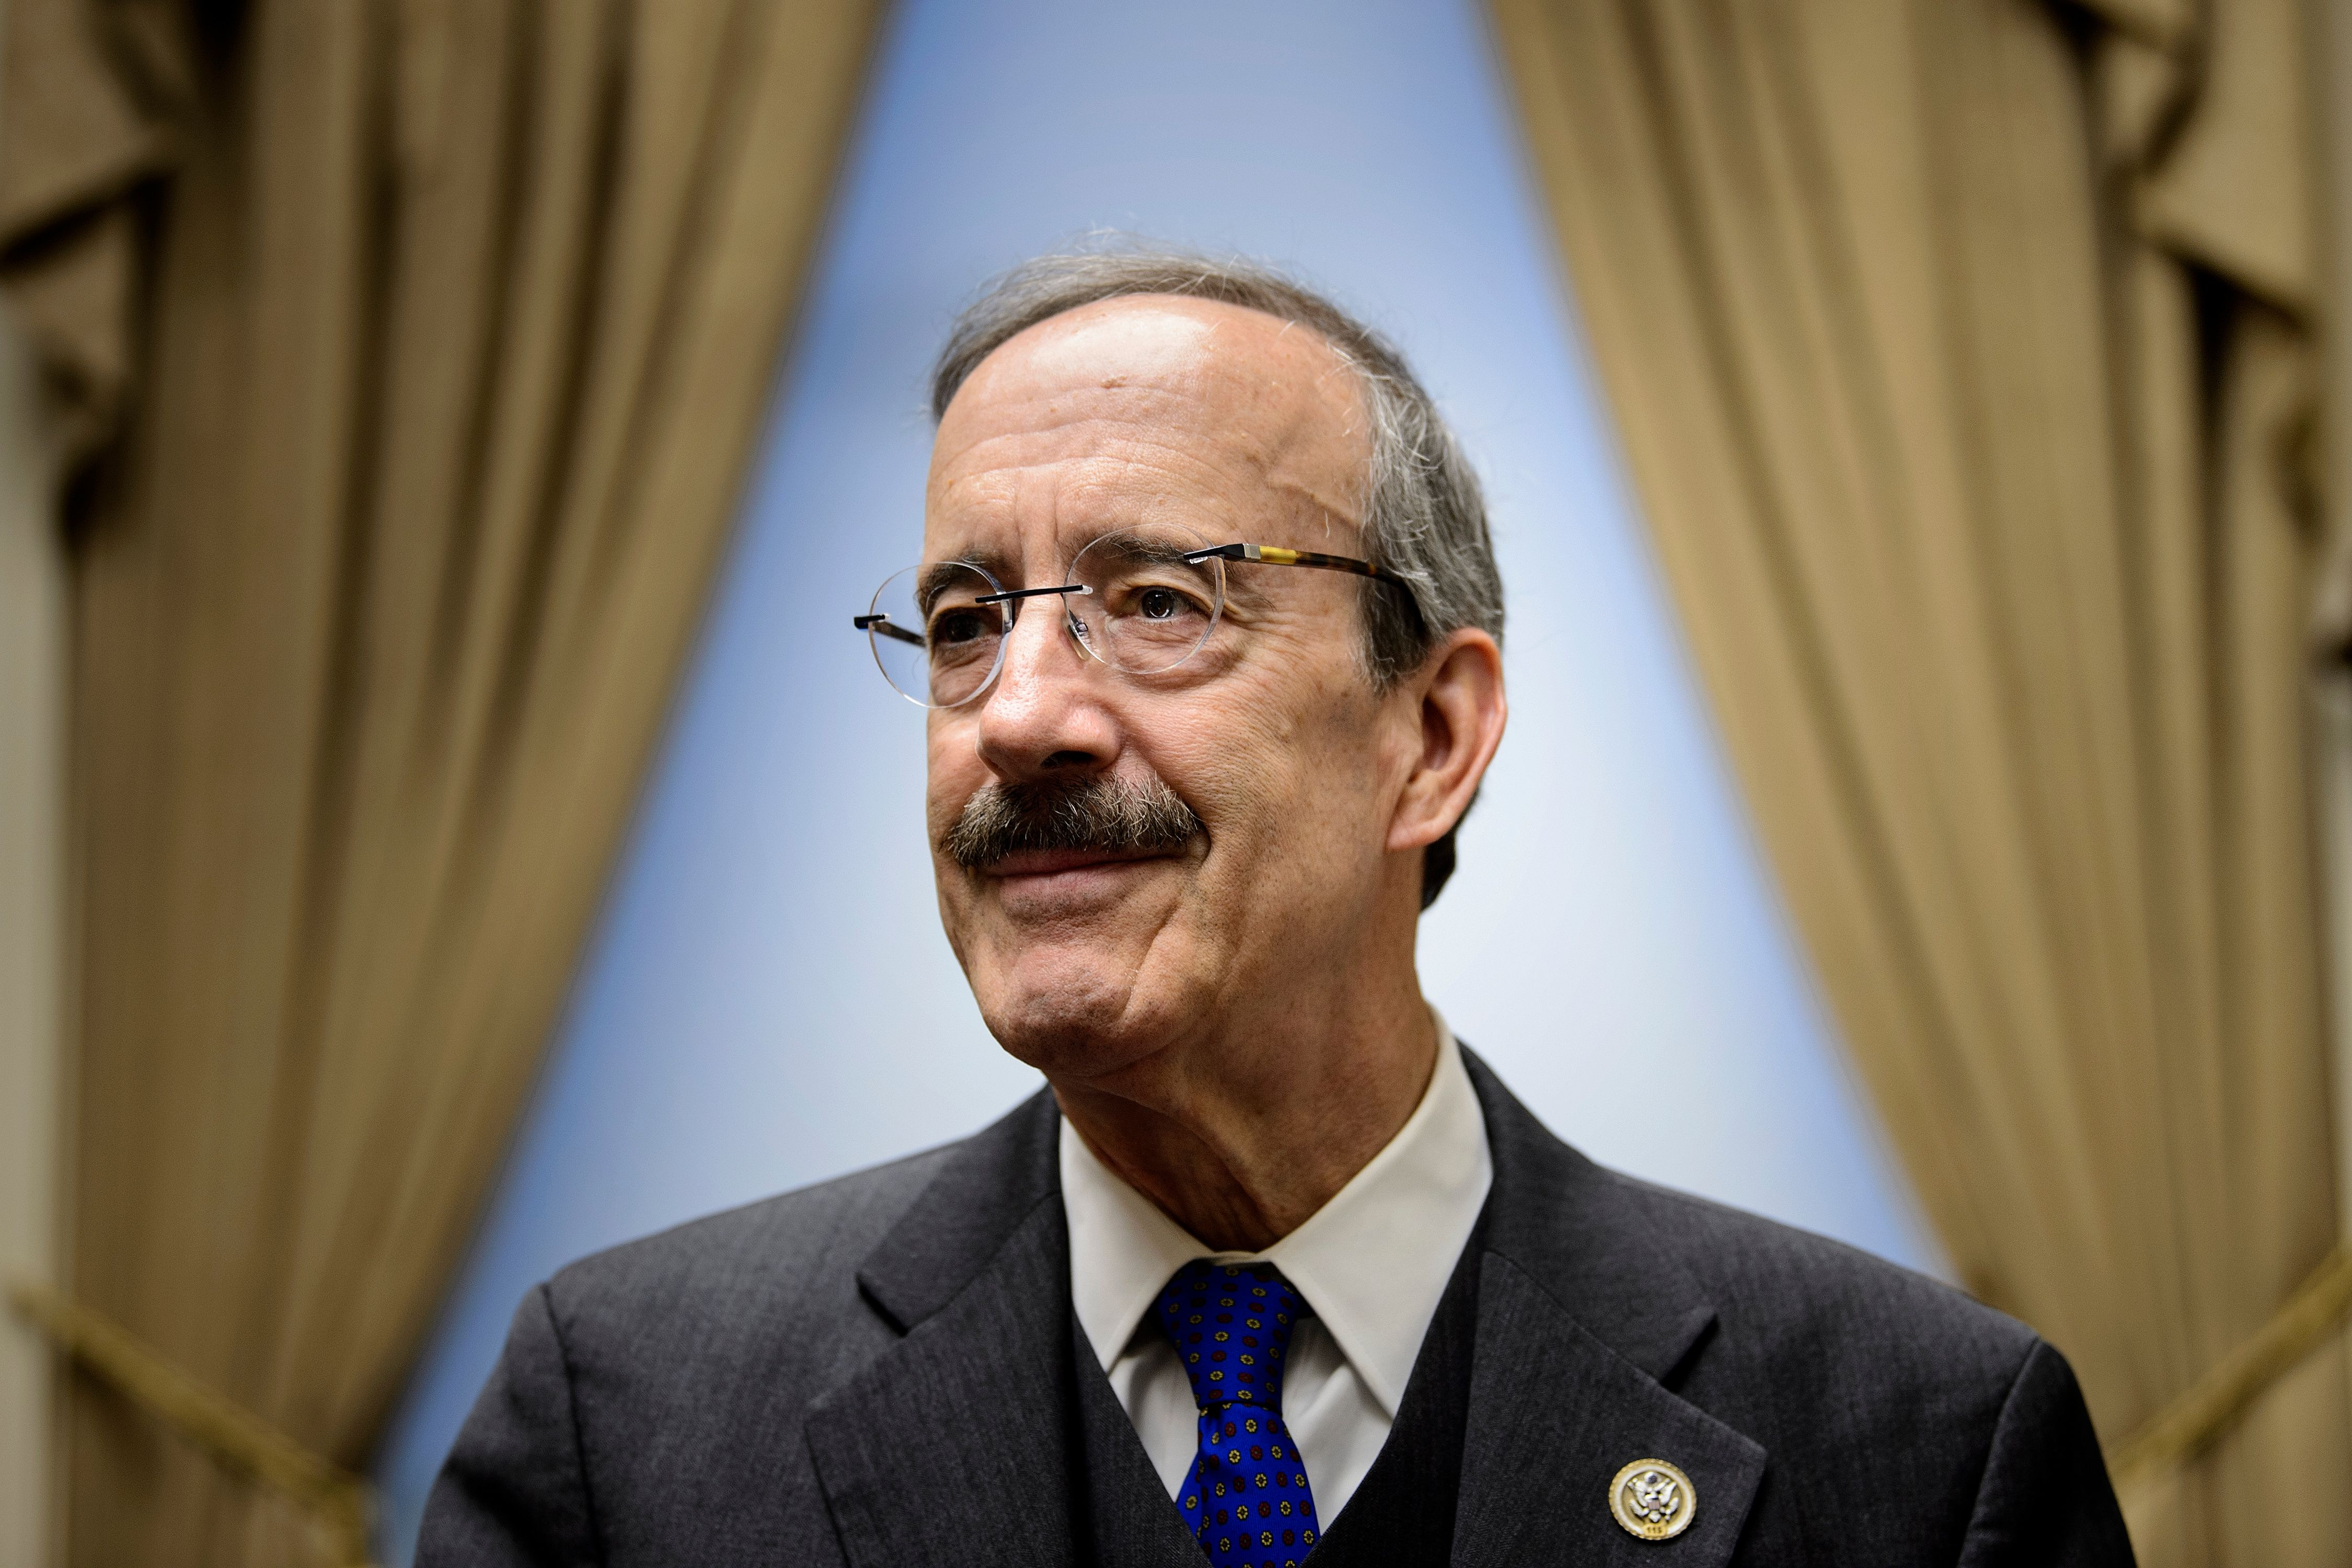 Ranking member of the House Foreign Relations Committee, Rep. Representative Eliot Engel, who is a leading candidate to take over the panel, poses for a portrait in his office on Capitol Hill November 15, 2018 in Washington, DC. (BRENDAN SMIALOWSKI/AFP/Getty Images)